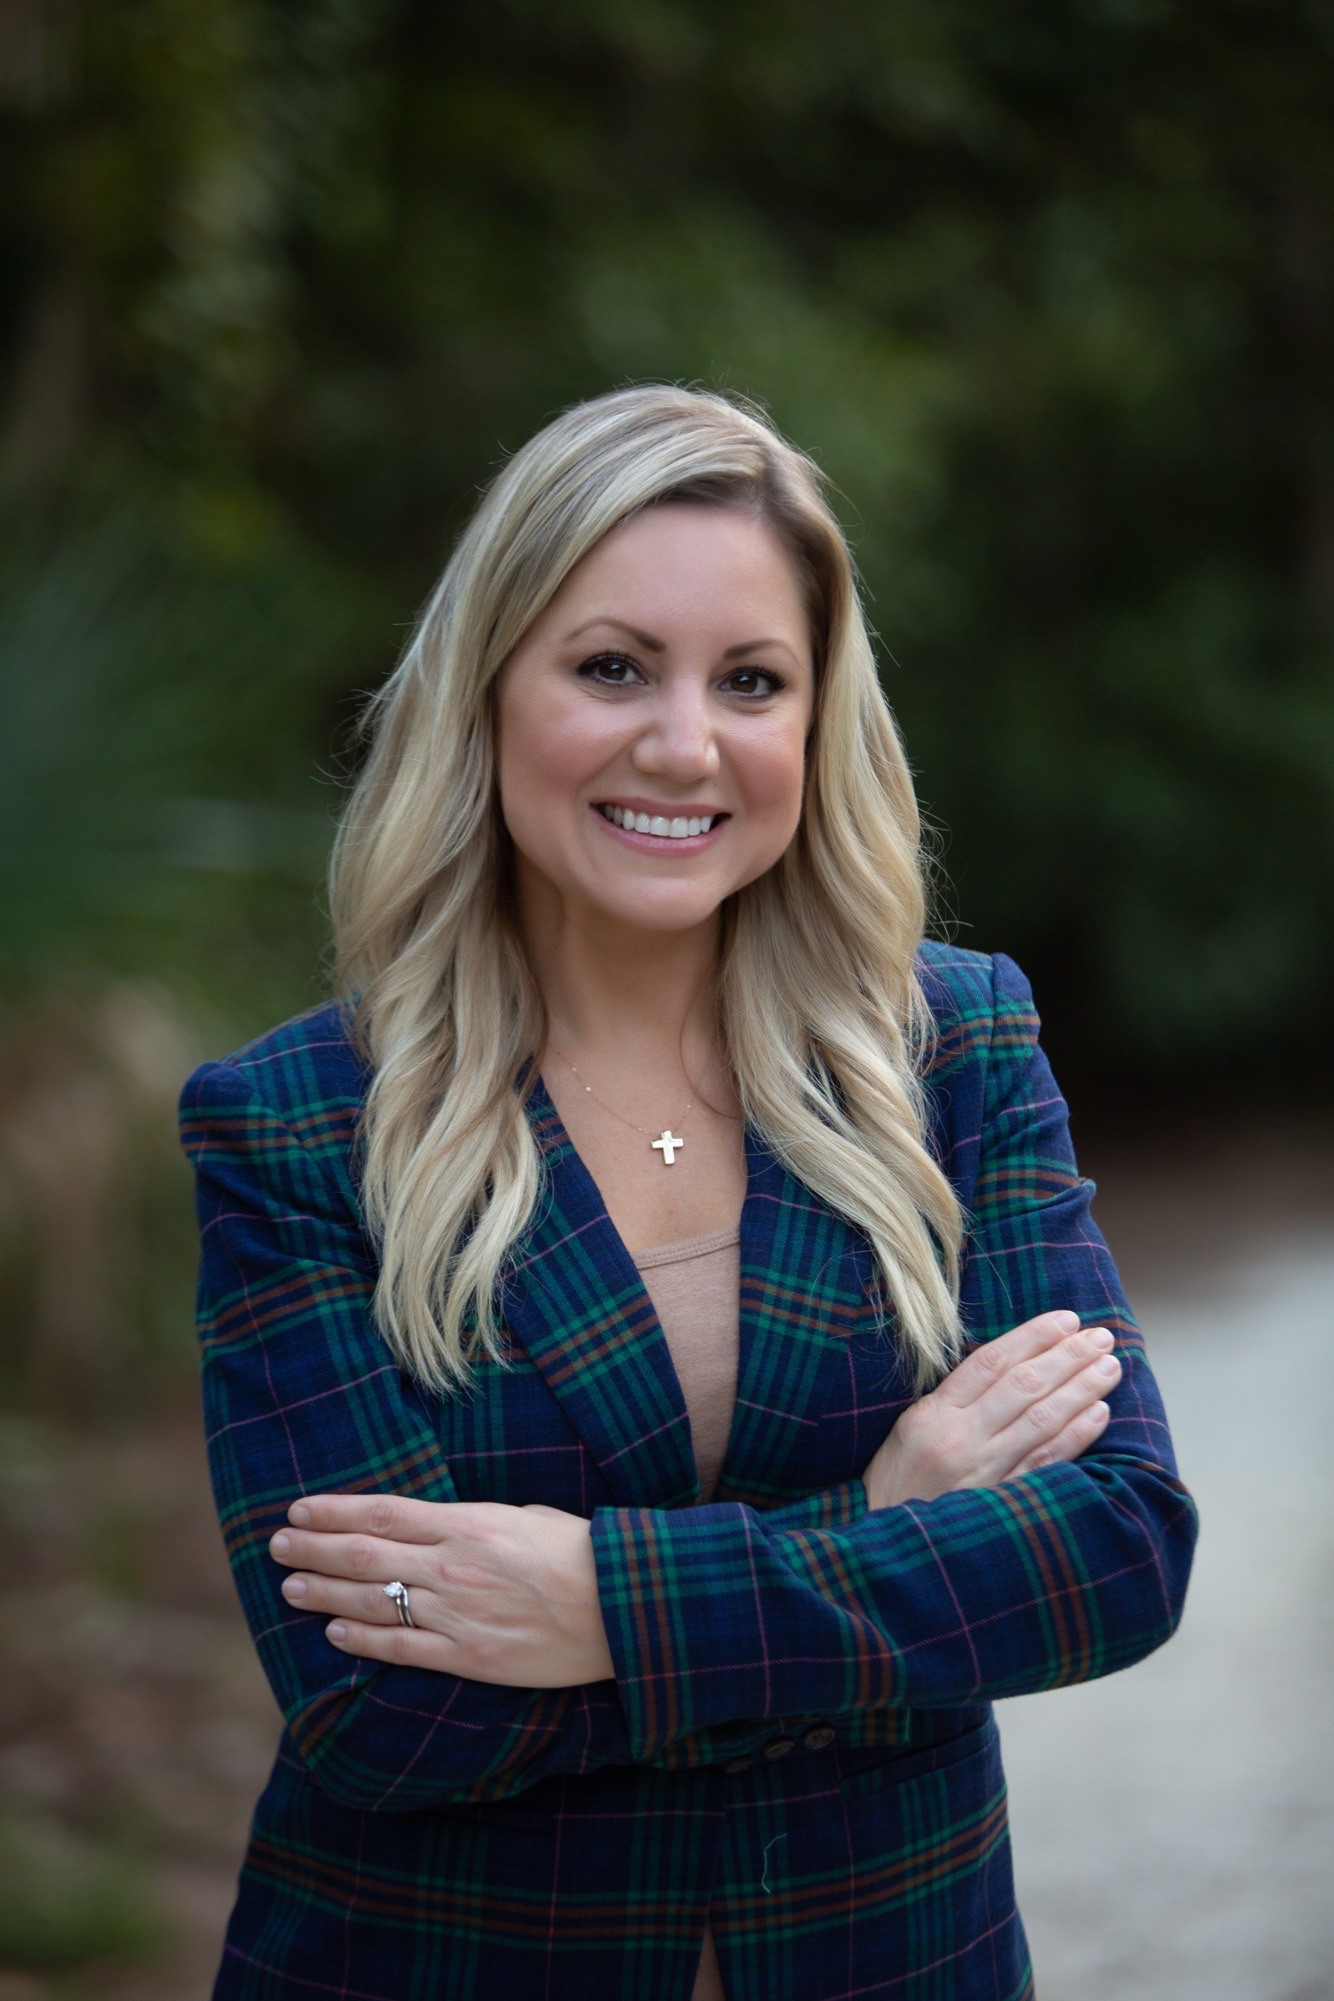 A woman in a blue plaid blazer and cross necklace with arms crossed, smiling at camera.